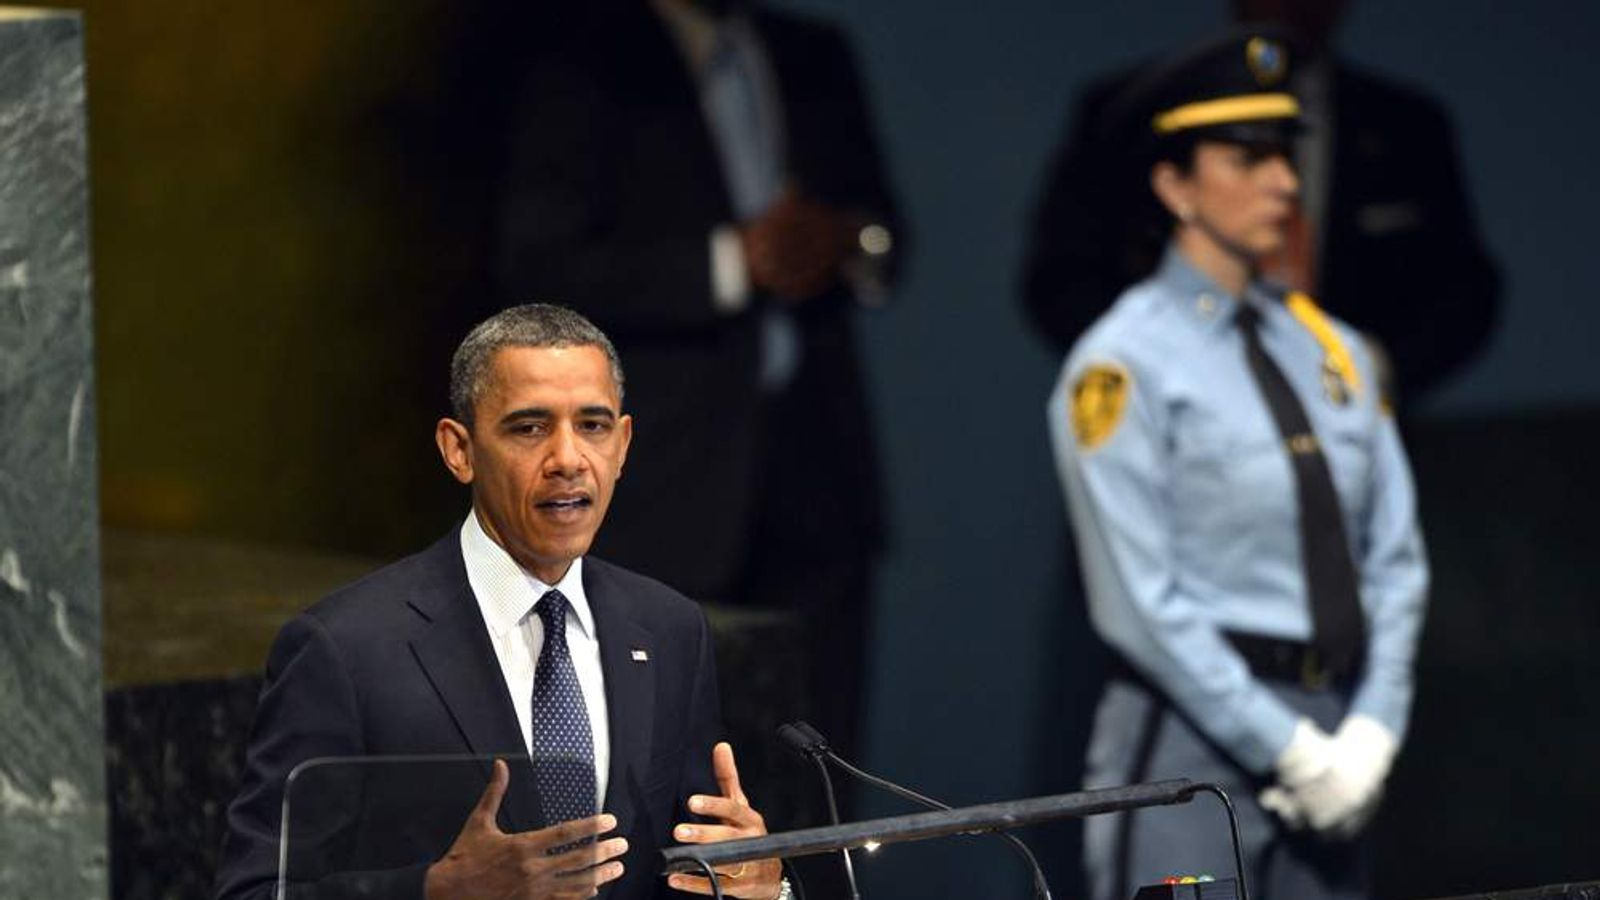 US President Barack Obama speaks during the 67th session of the United Nations General Assembly at the United Nations in New York on September 25, 2012.